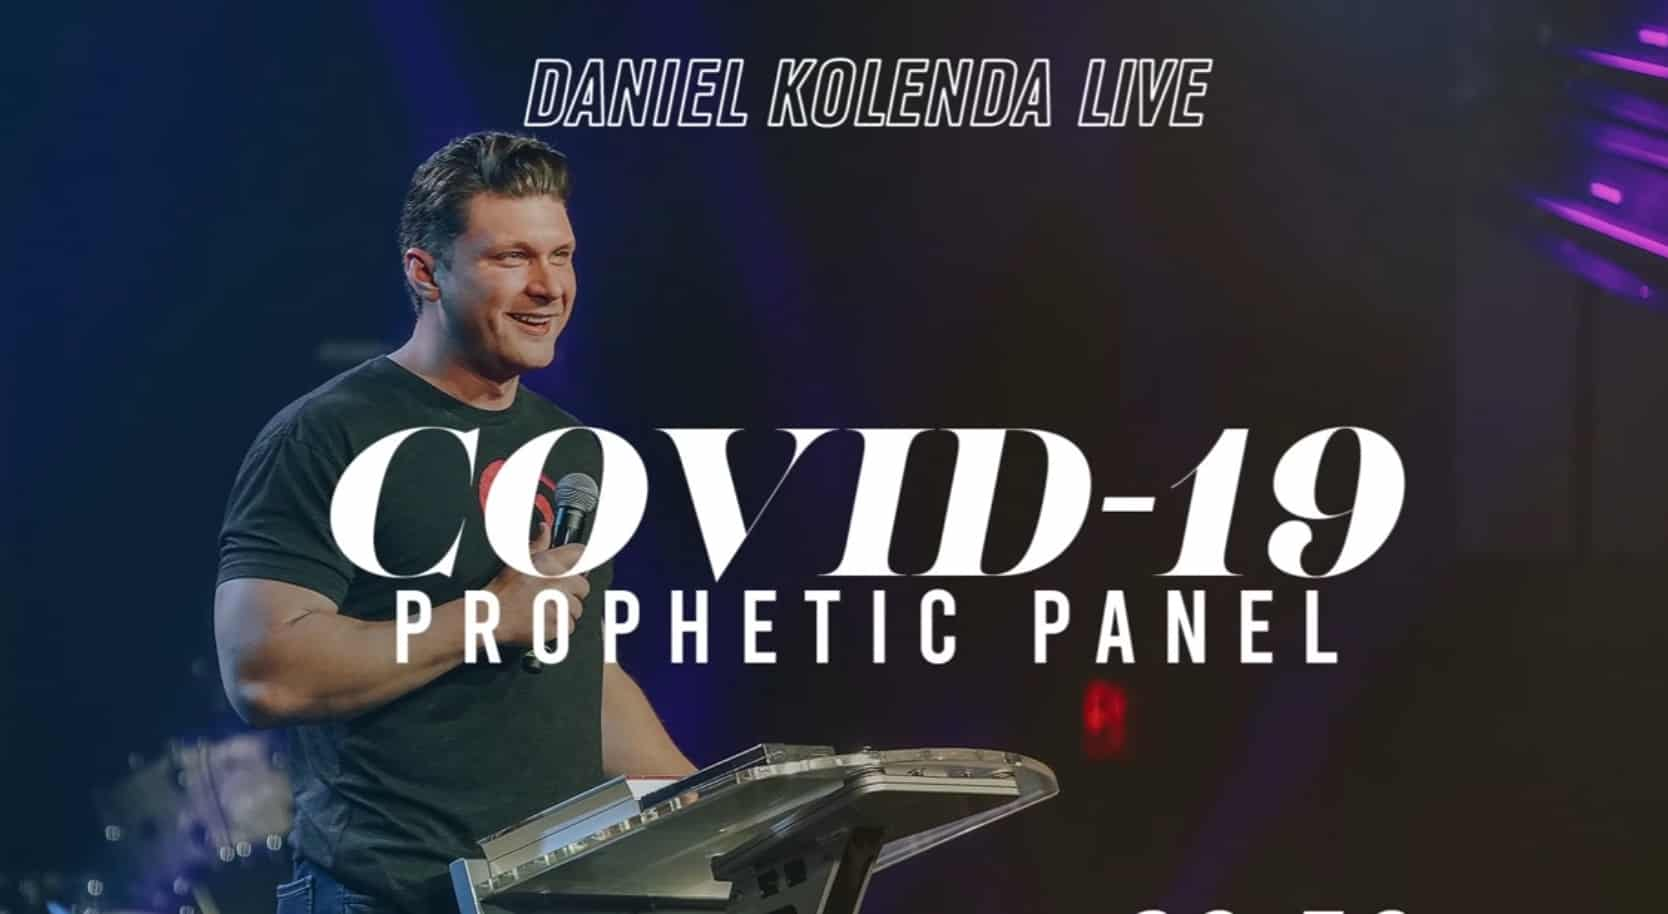 Daniel Kolenda combats Covid-19 fears along with answers from a prophetic panel